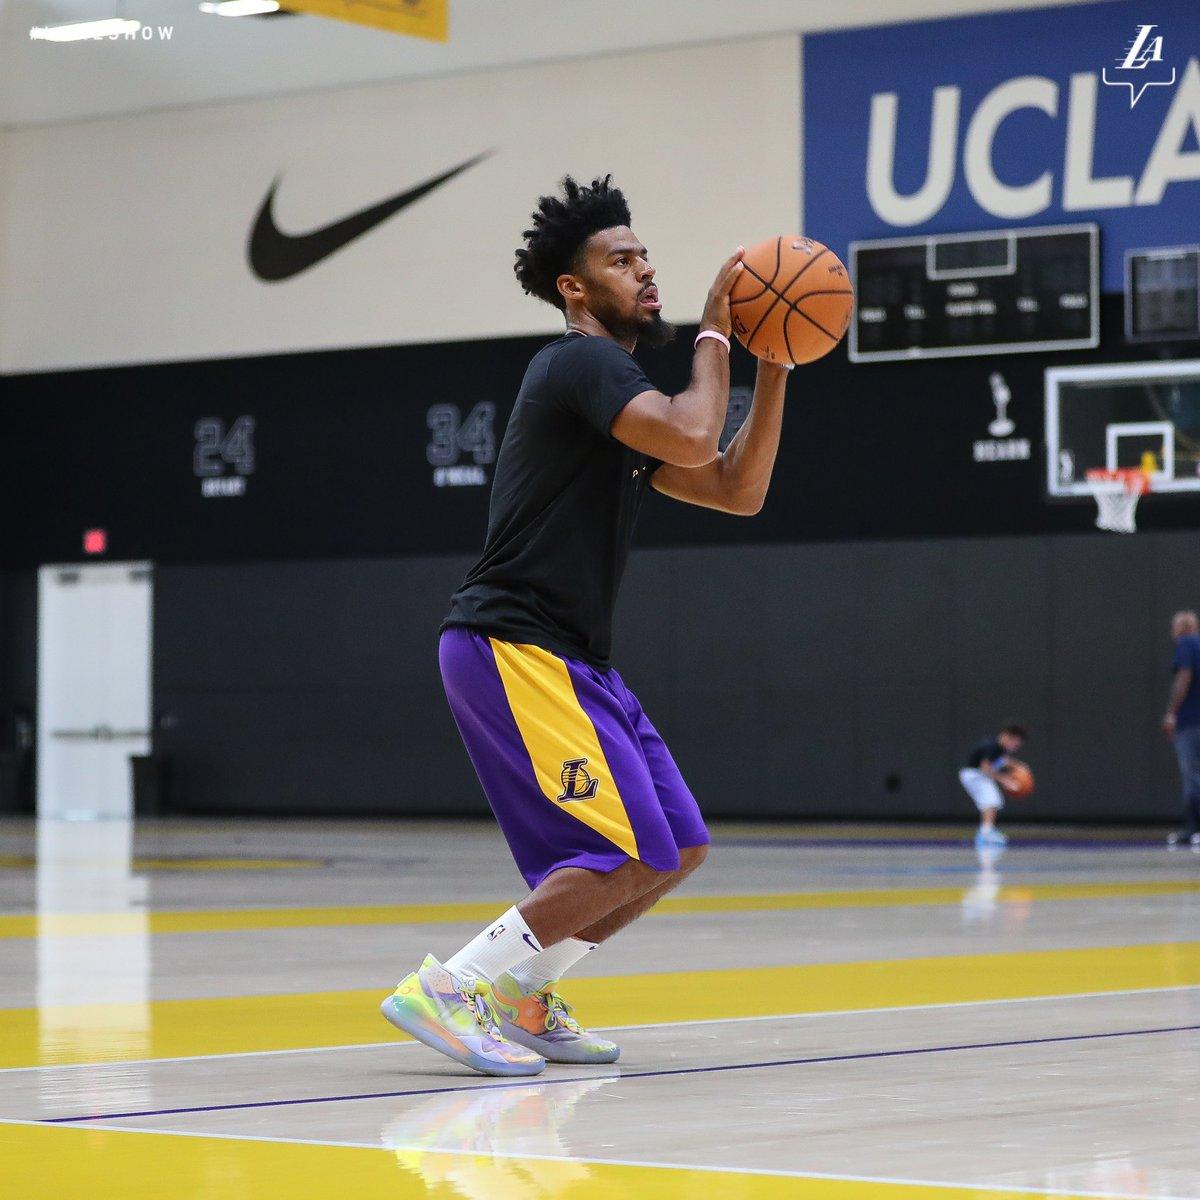 Cookin' up 😈 #LakeShow